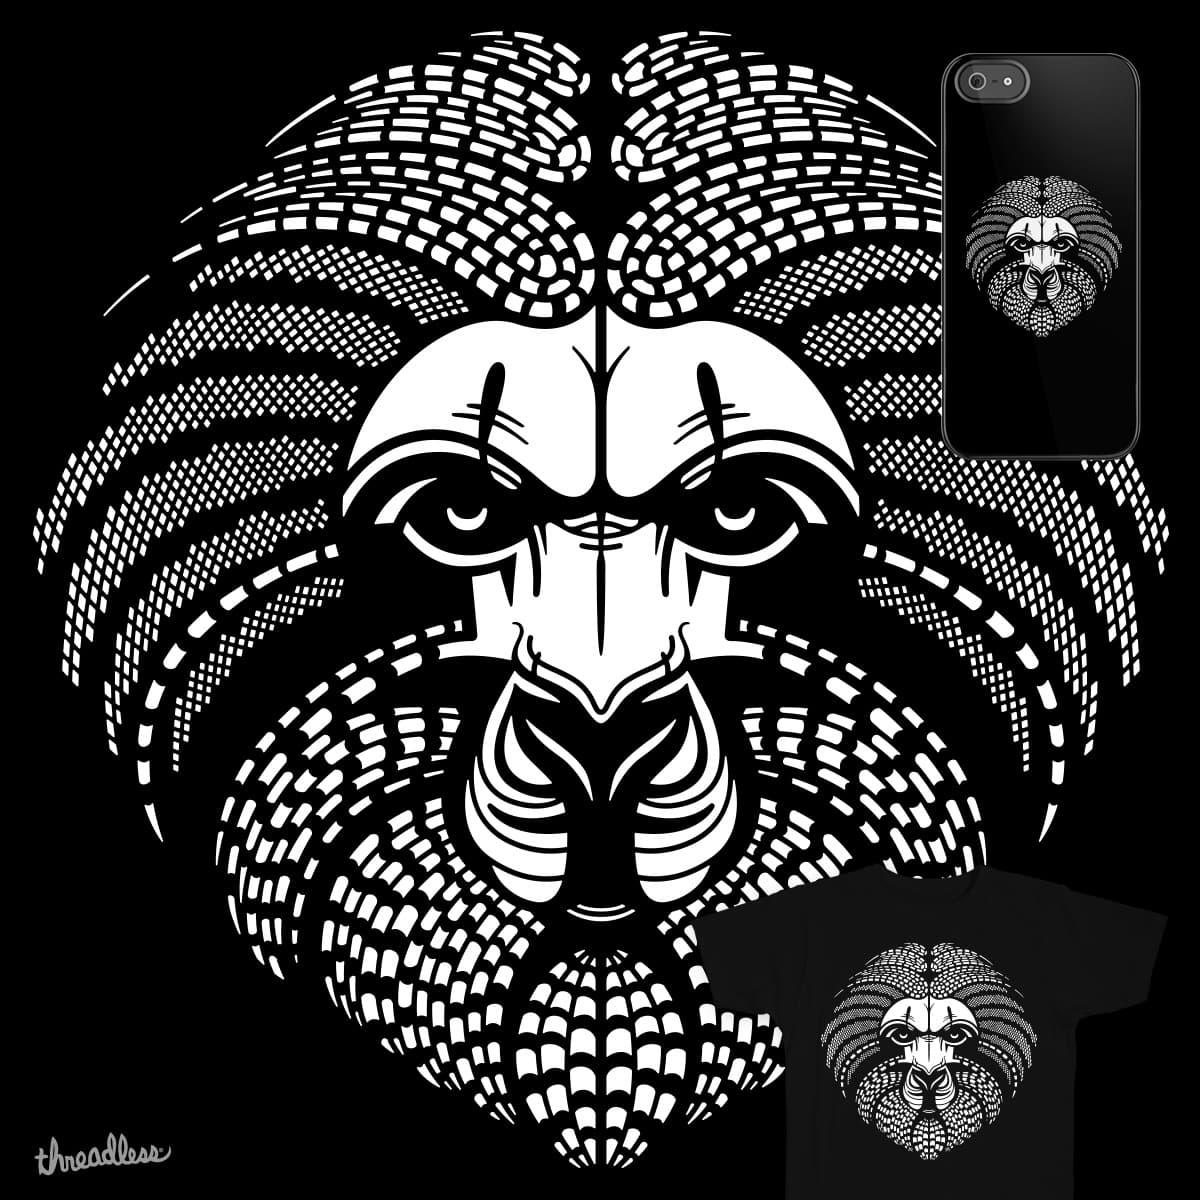 LION FACE MASK by PAPKOK on Threadless